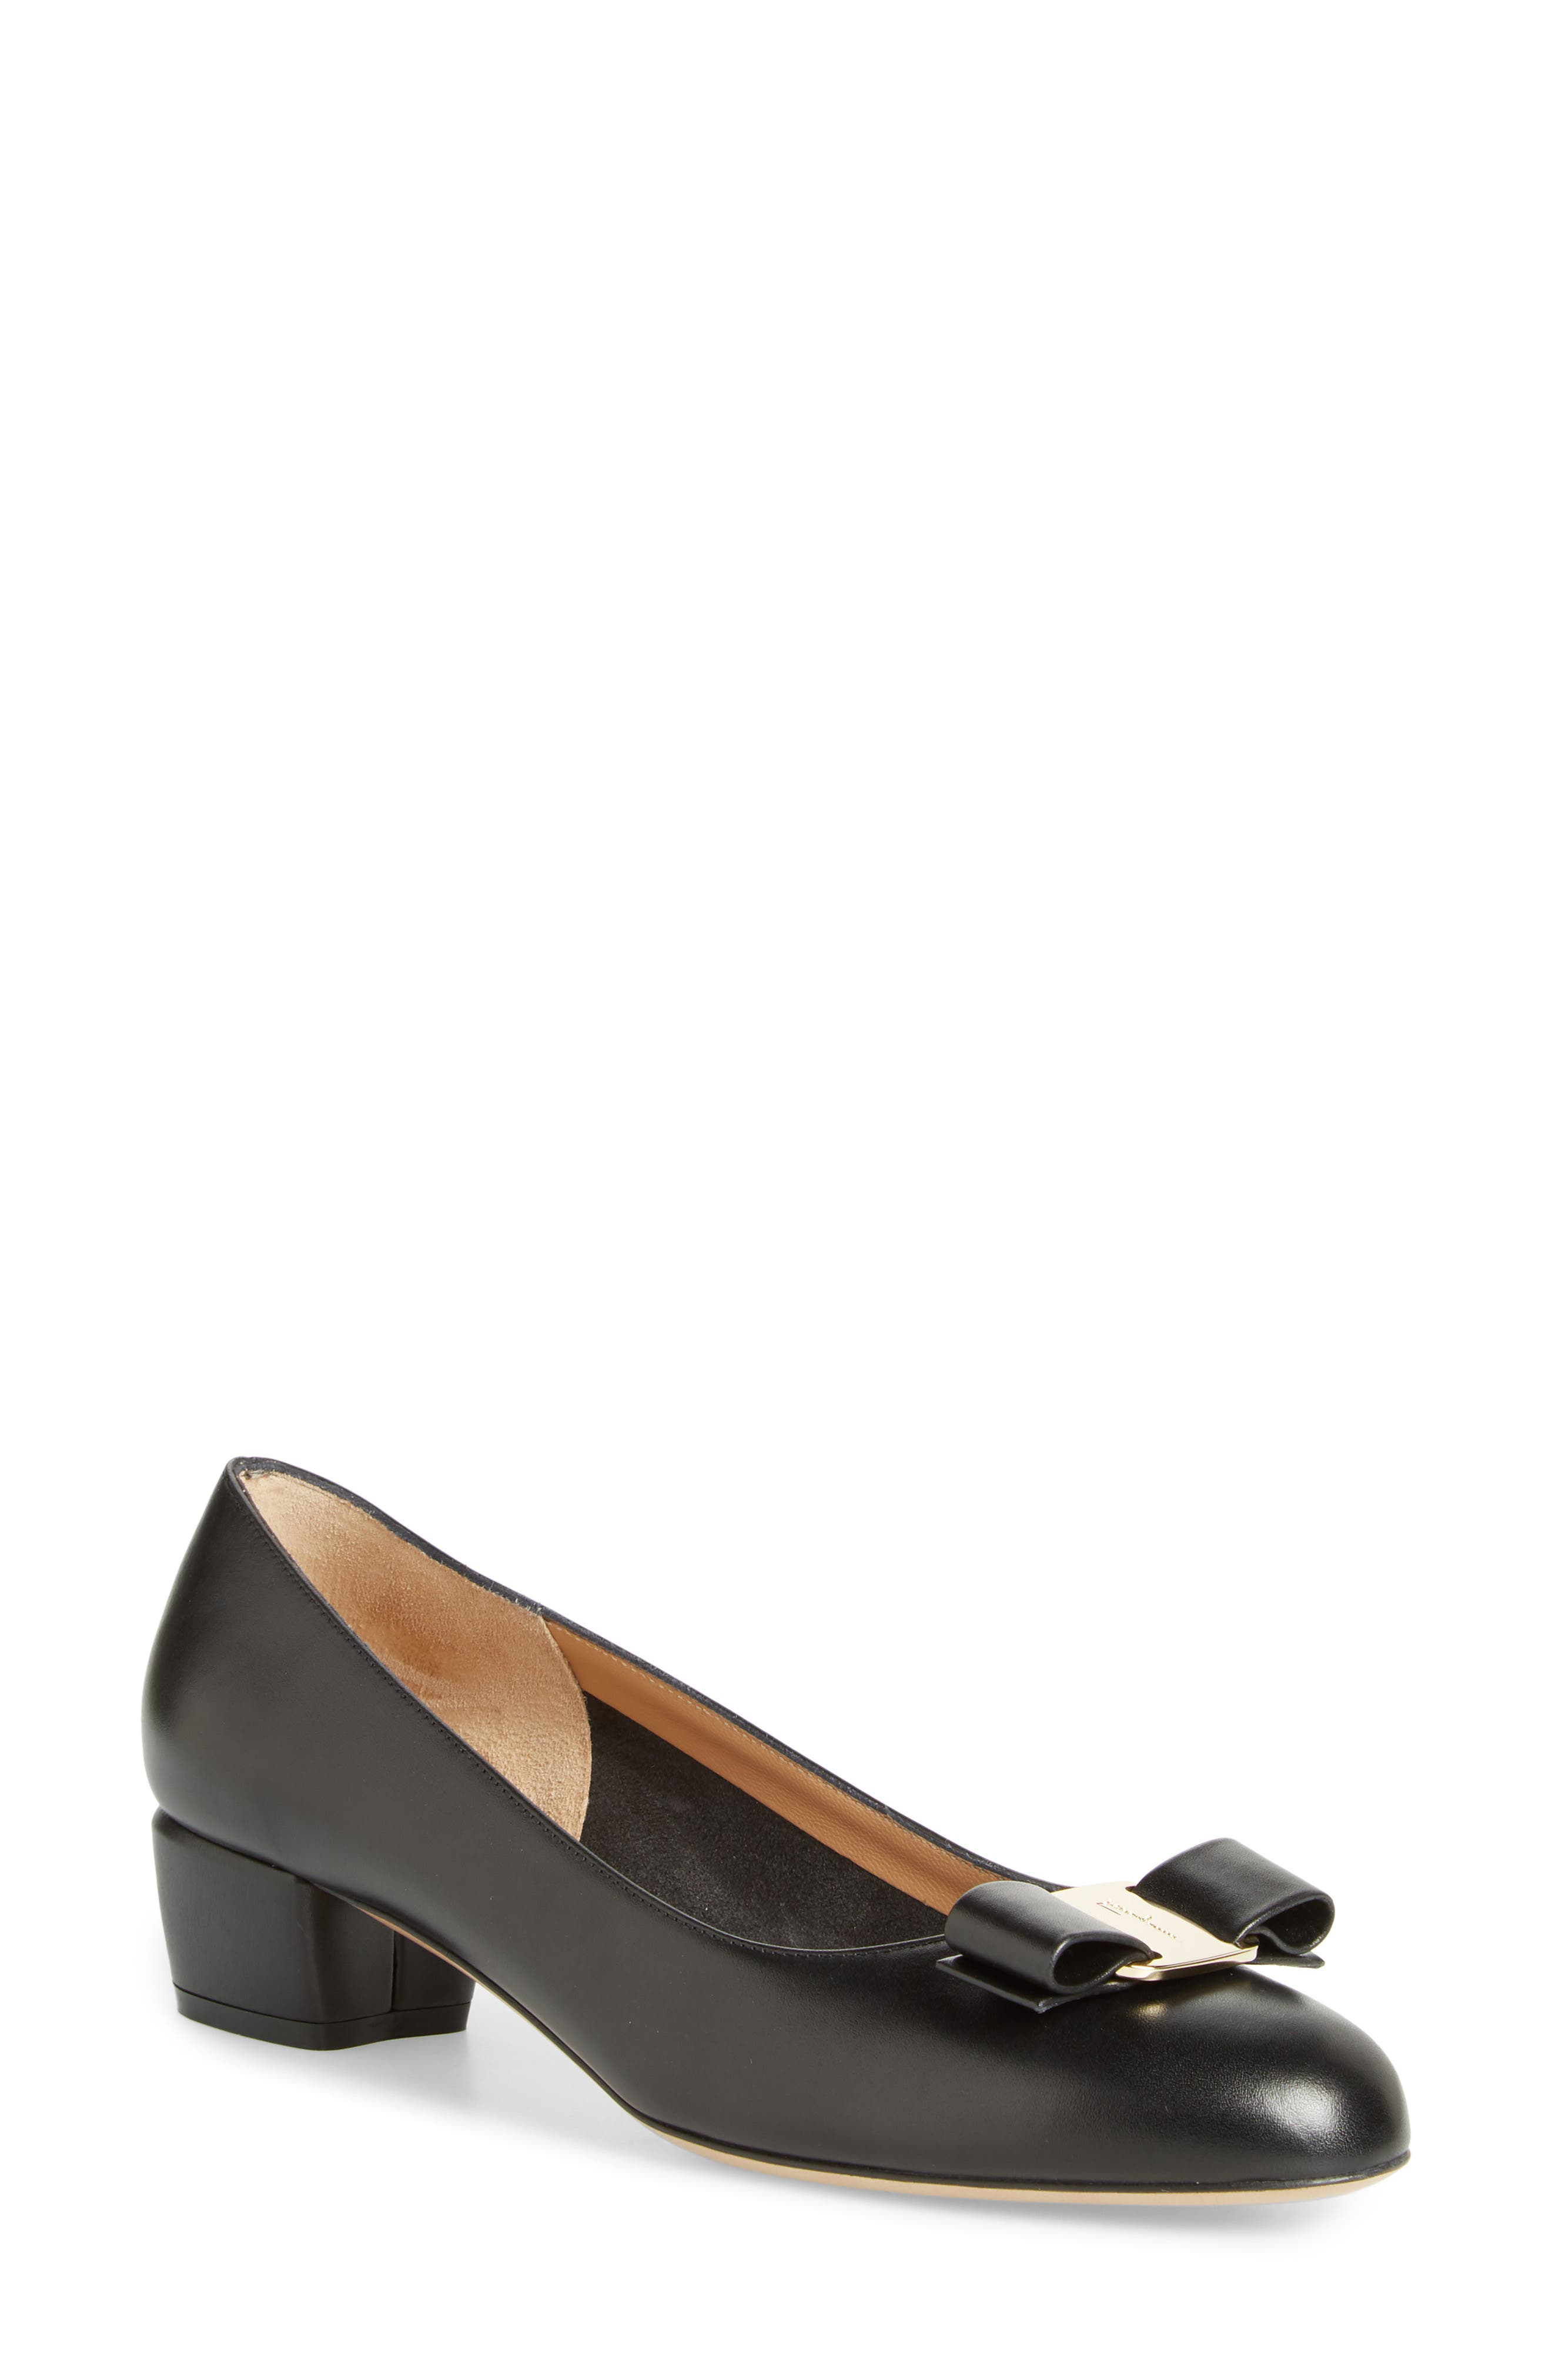 1a3a6e26954 Ferragamo Women s Shoes